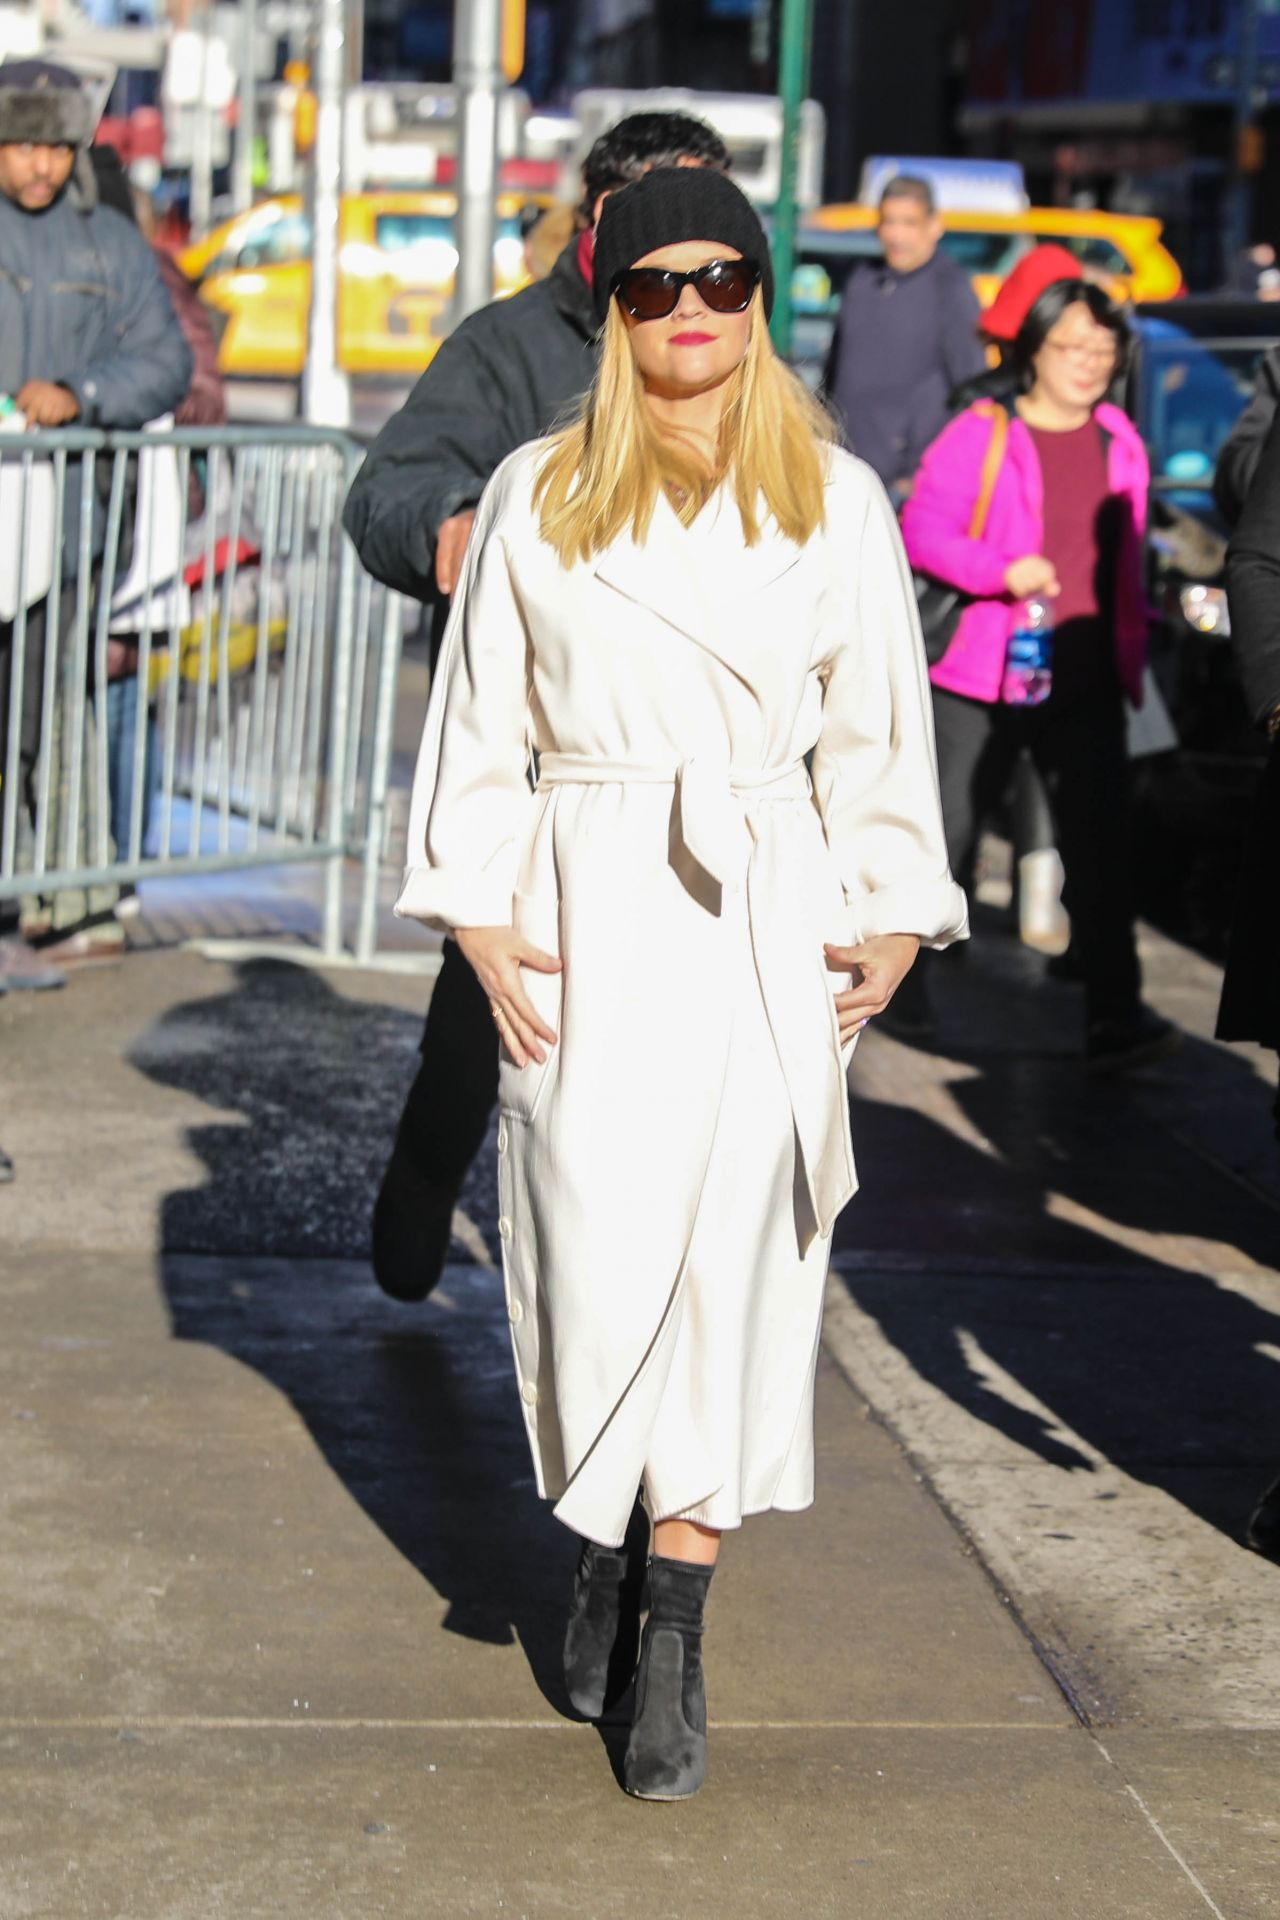 http://celebmafia.com/wp-content/uploads/2018/03/reese-witherspoon-in-wintery-white-coat-gma-in-new-york-03-08-2018-5.jpg